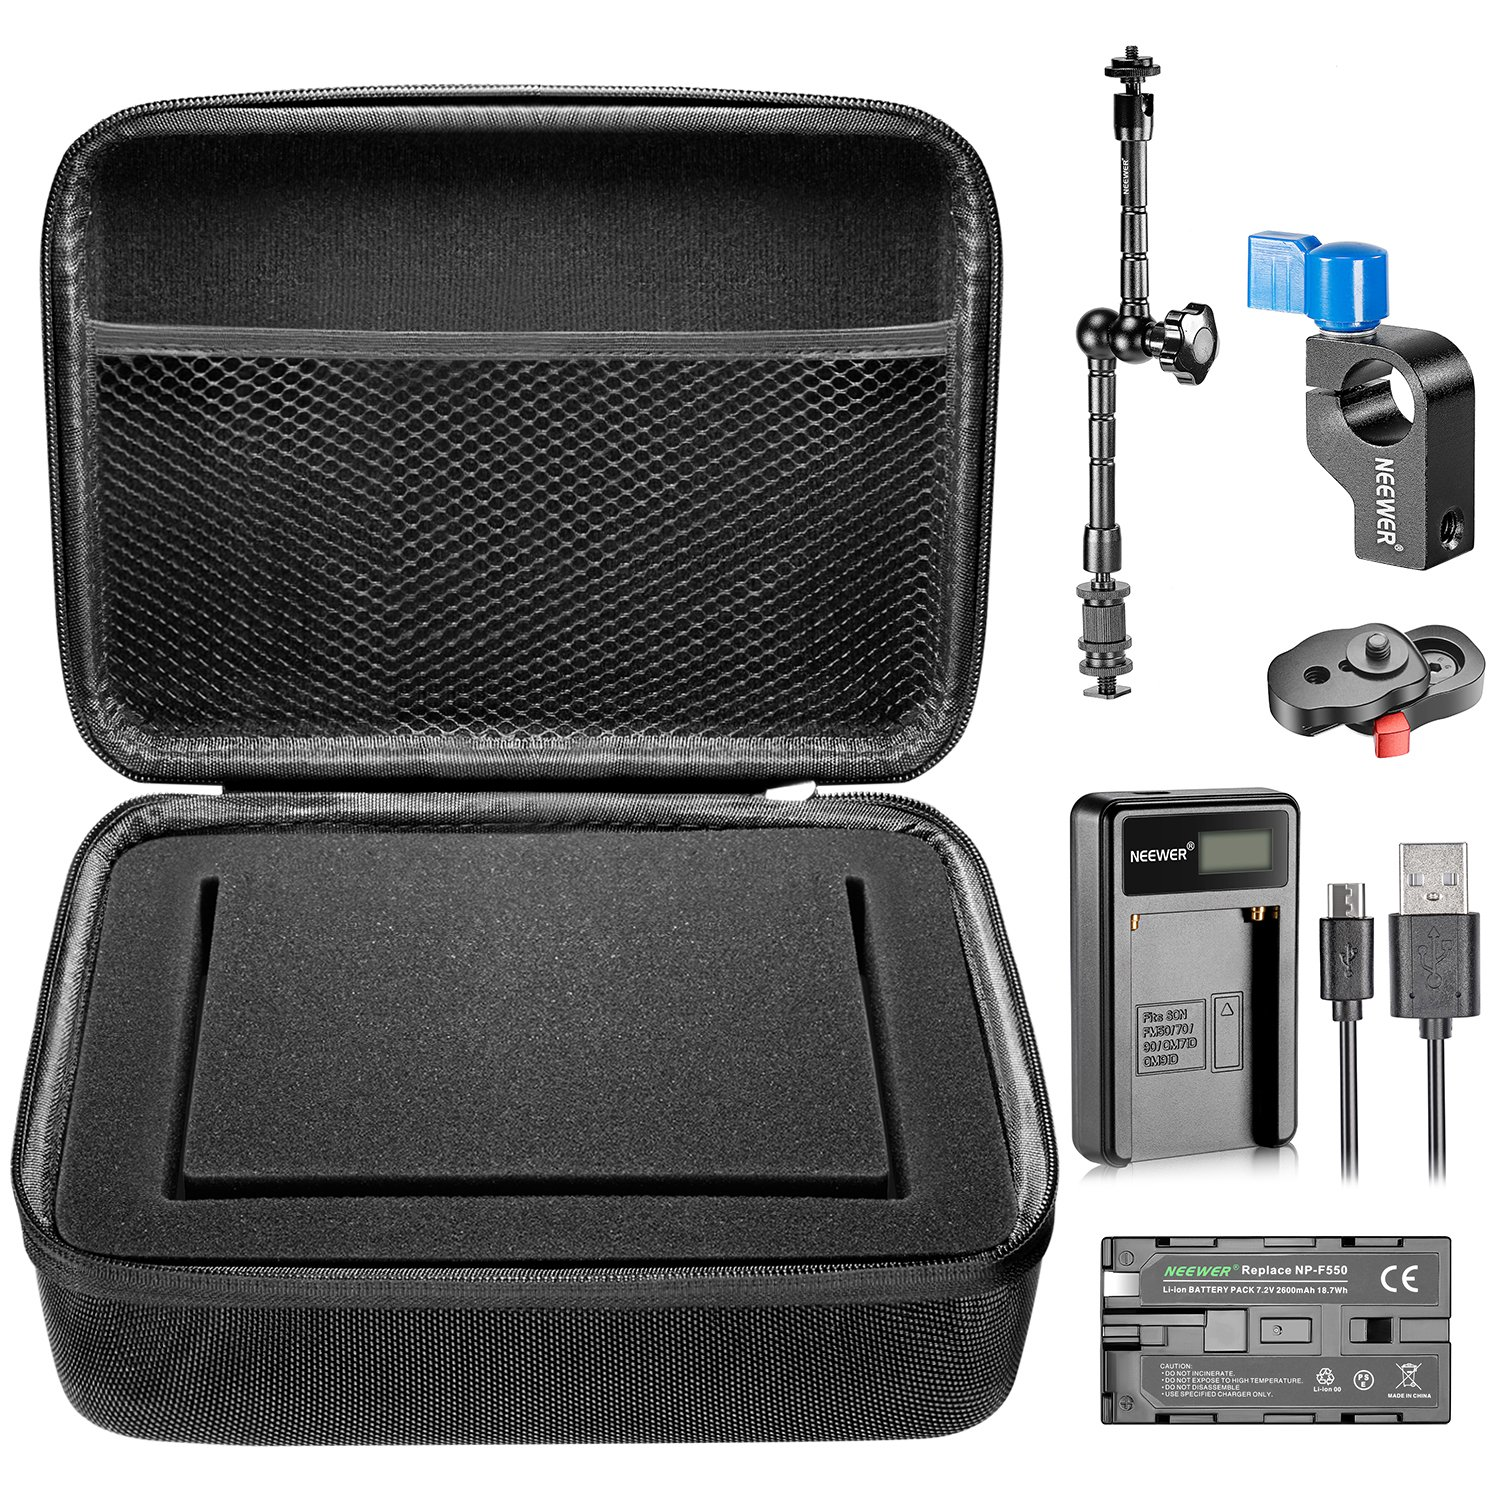 Neewer 7 inches Camera Field Monitor Accessory Kit for Neewer NW759 74K 760, Feelworld FW759 759P 760 74K and Others: F550 Replacement Battery, USB Charger Quick Release Plate,Carrying Case,Magic Arm by Neewer